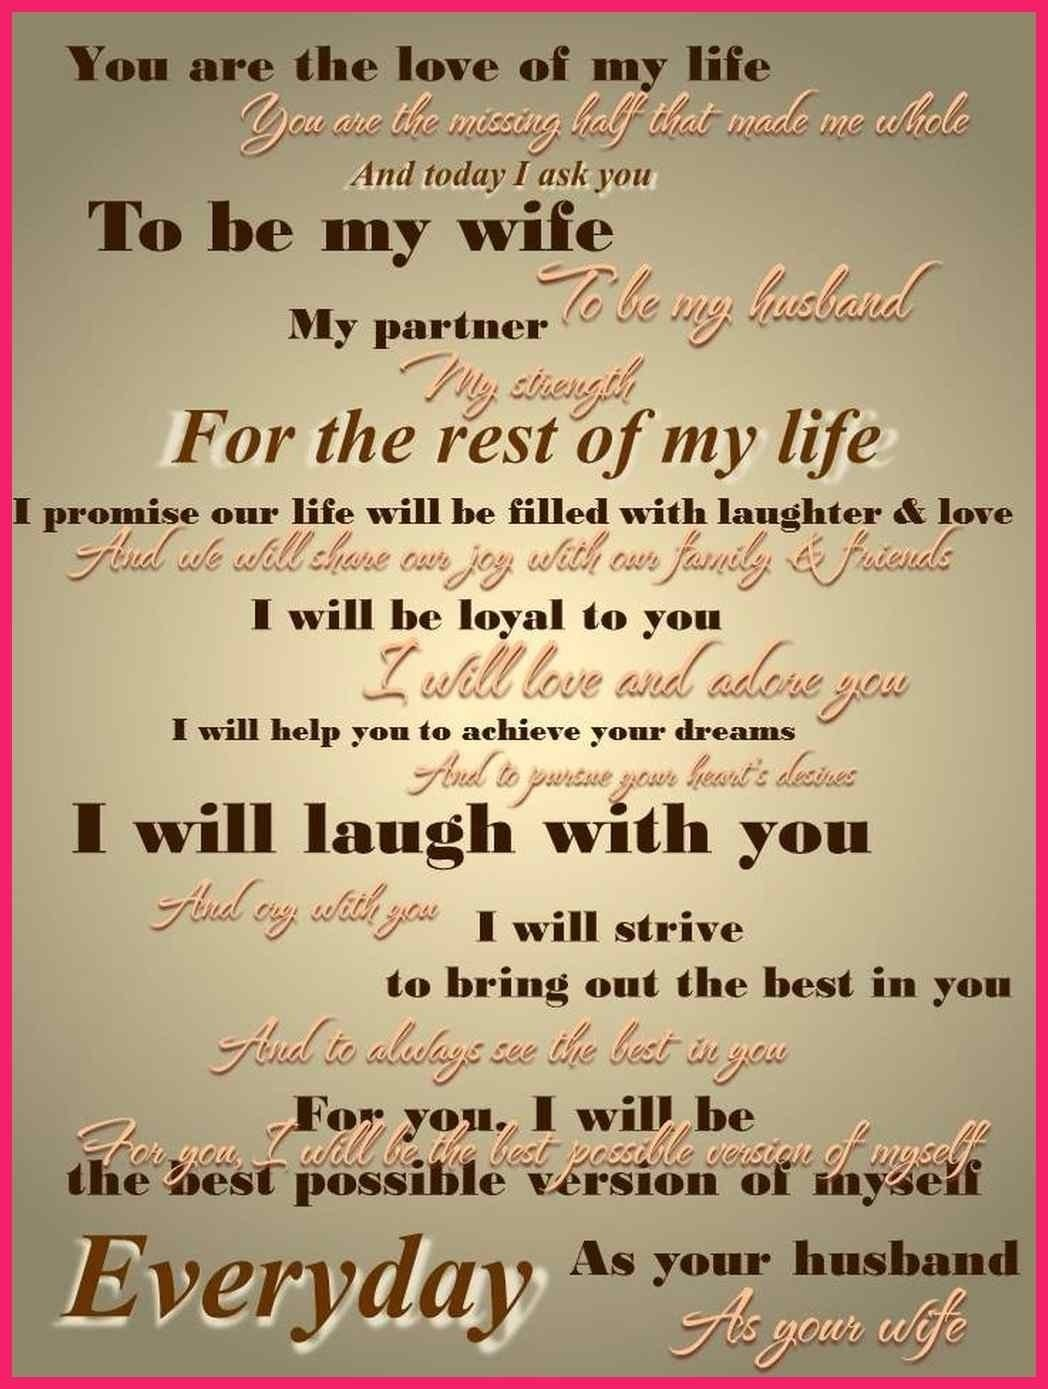 10 Famous Wedding Vow Ideas For Her funny wedding vows for him bio letter format 2020